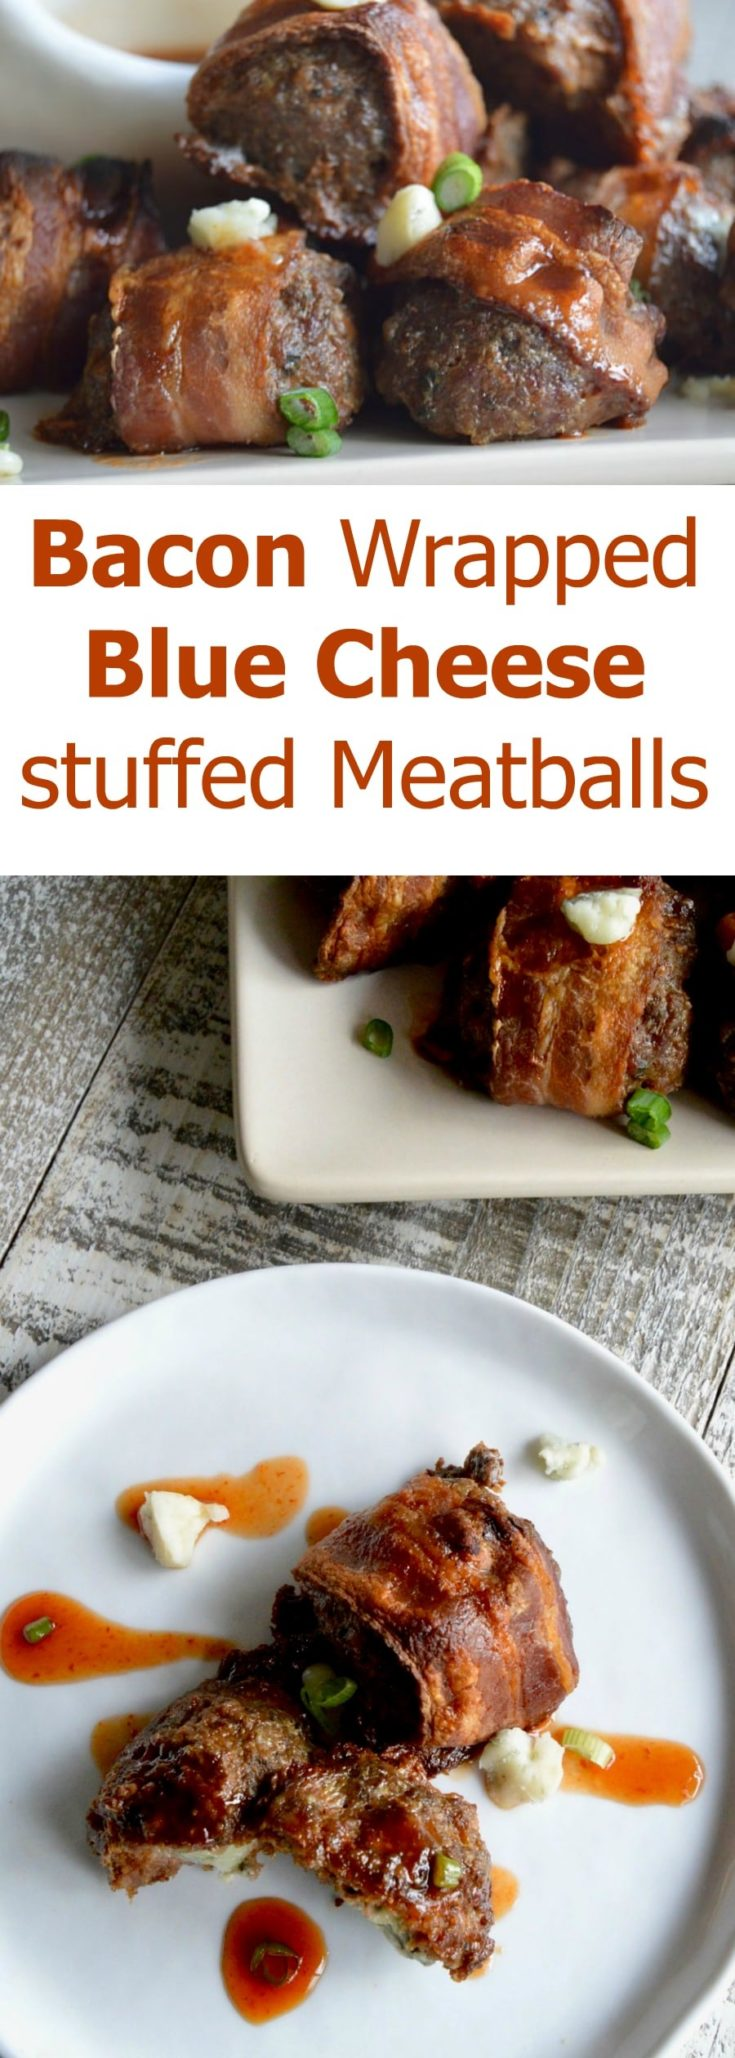 Easy peasy meatballs with a dollop of blue cheese in the middle that when you bite into it just oozes with flavor